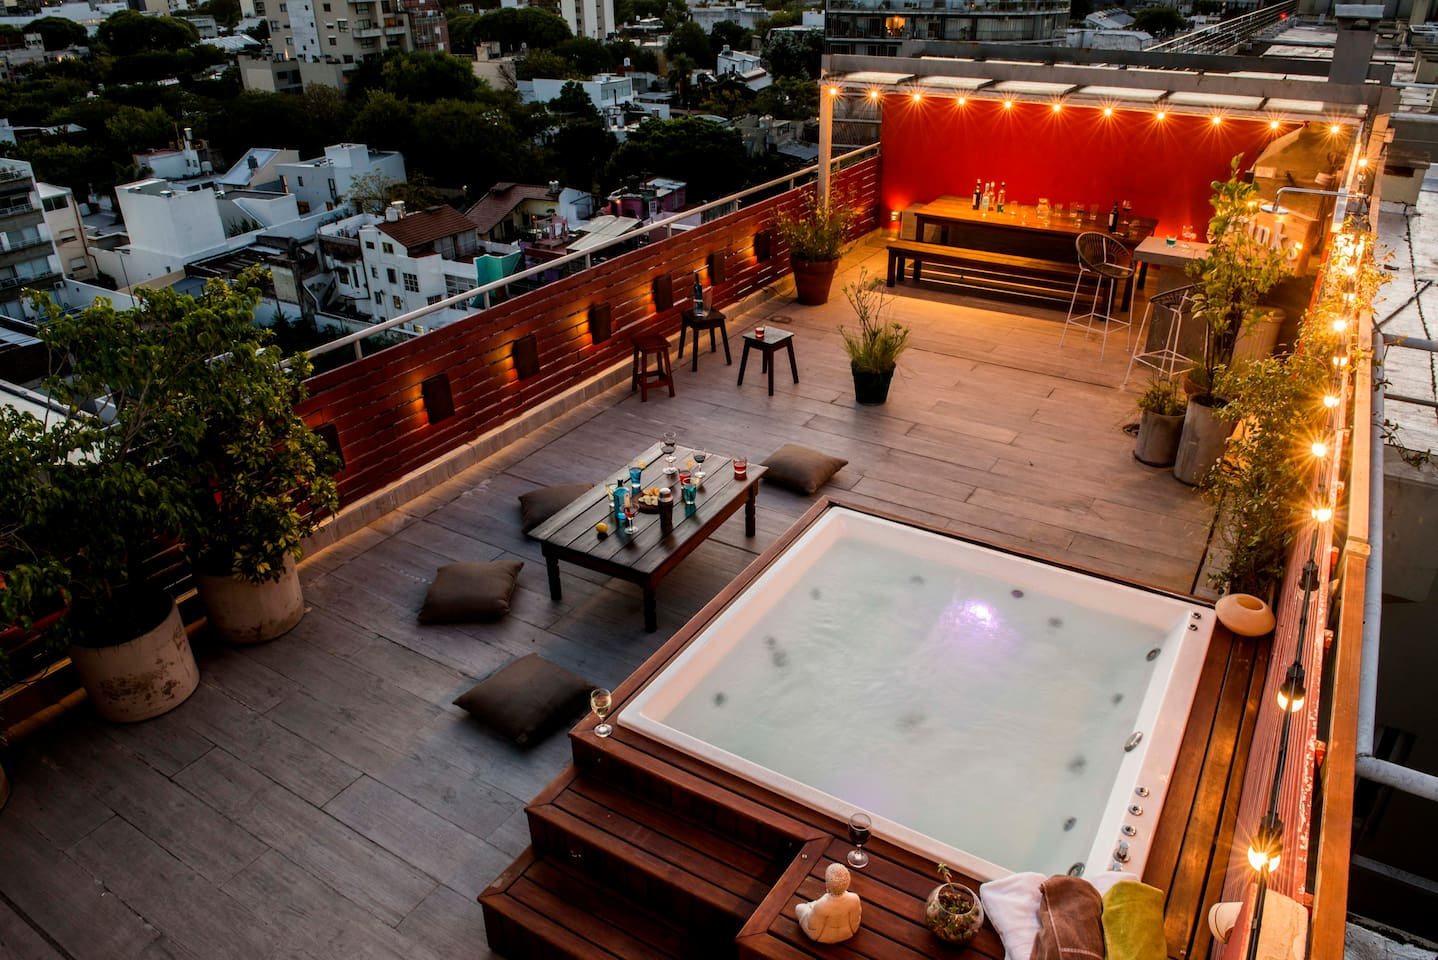 Superb private rooftop terrace, just fantastic